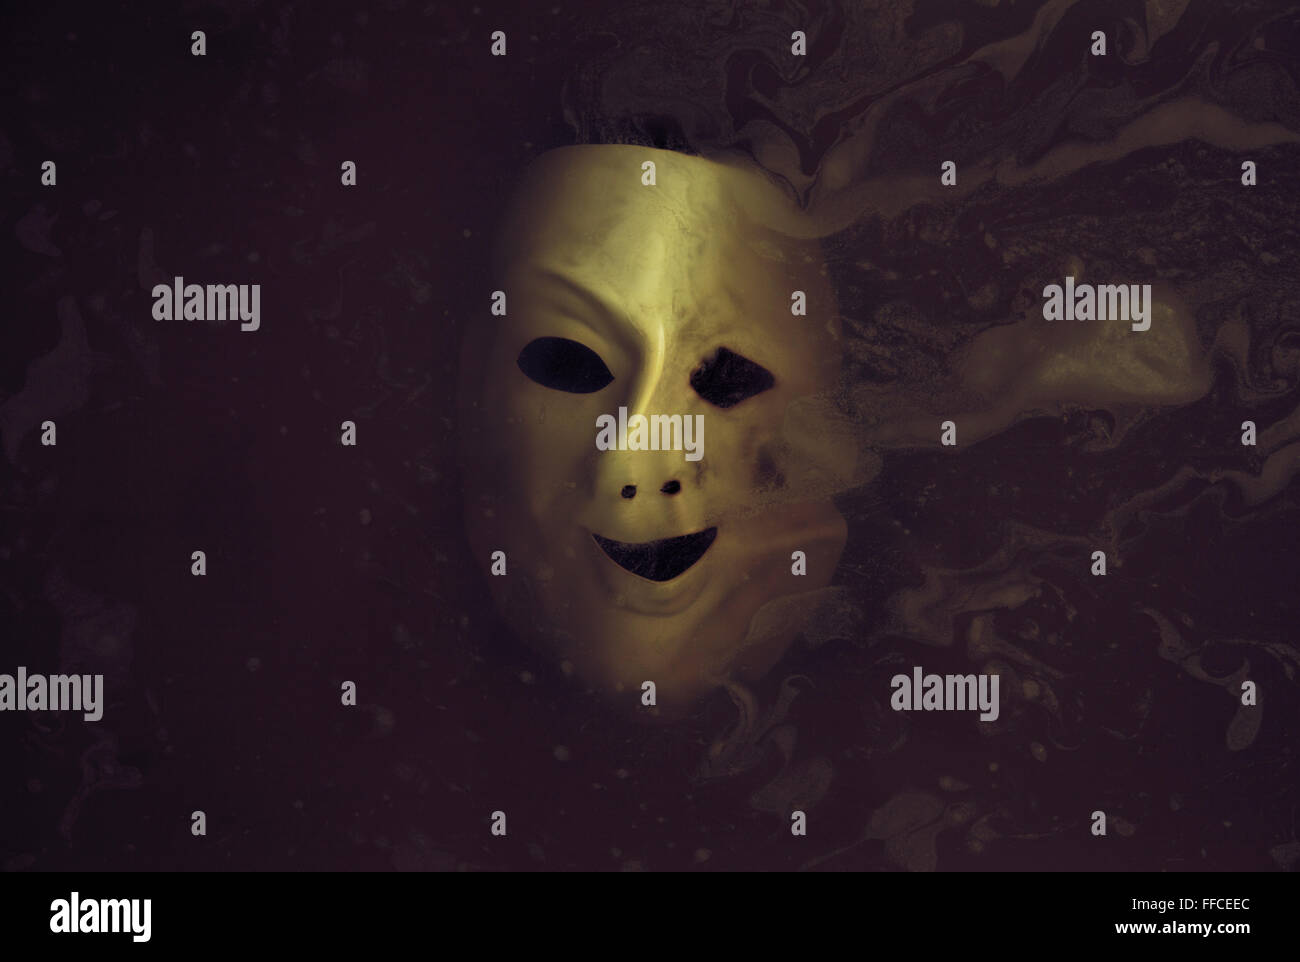 Deformed scary mask in the dark water - Stock Image